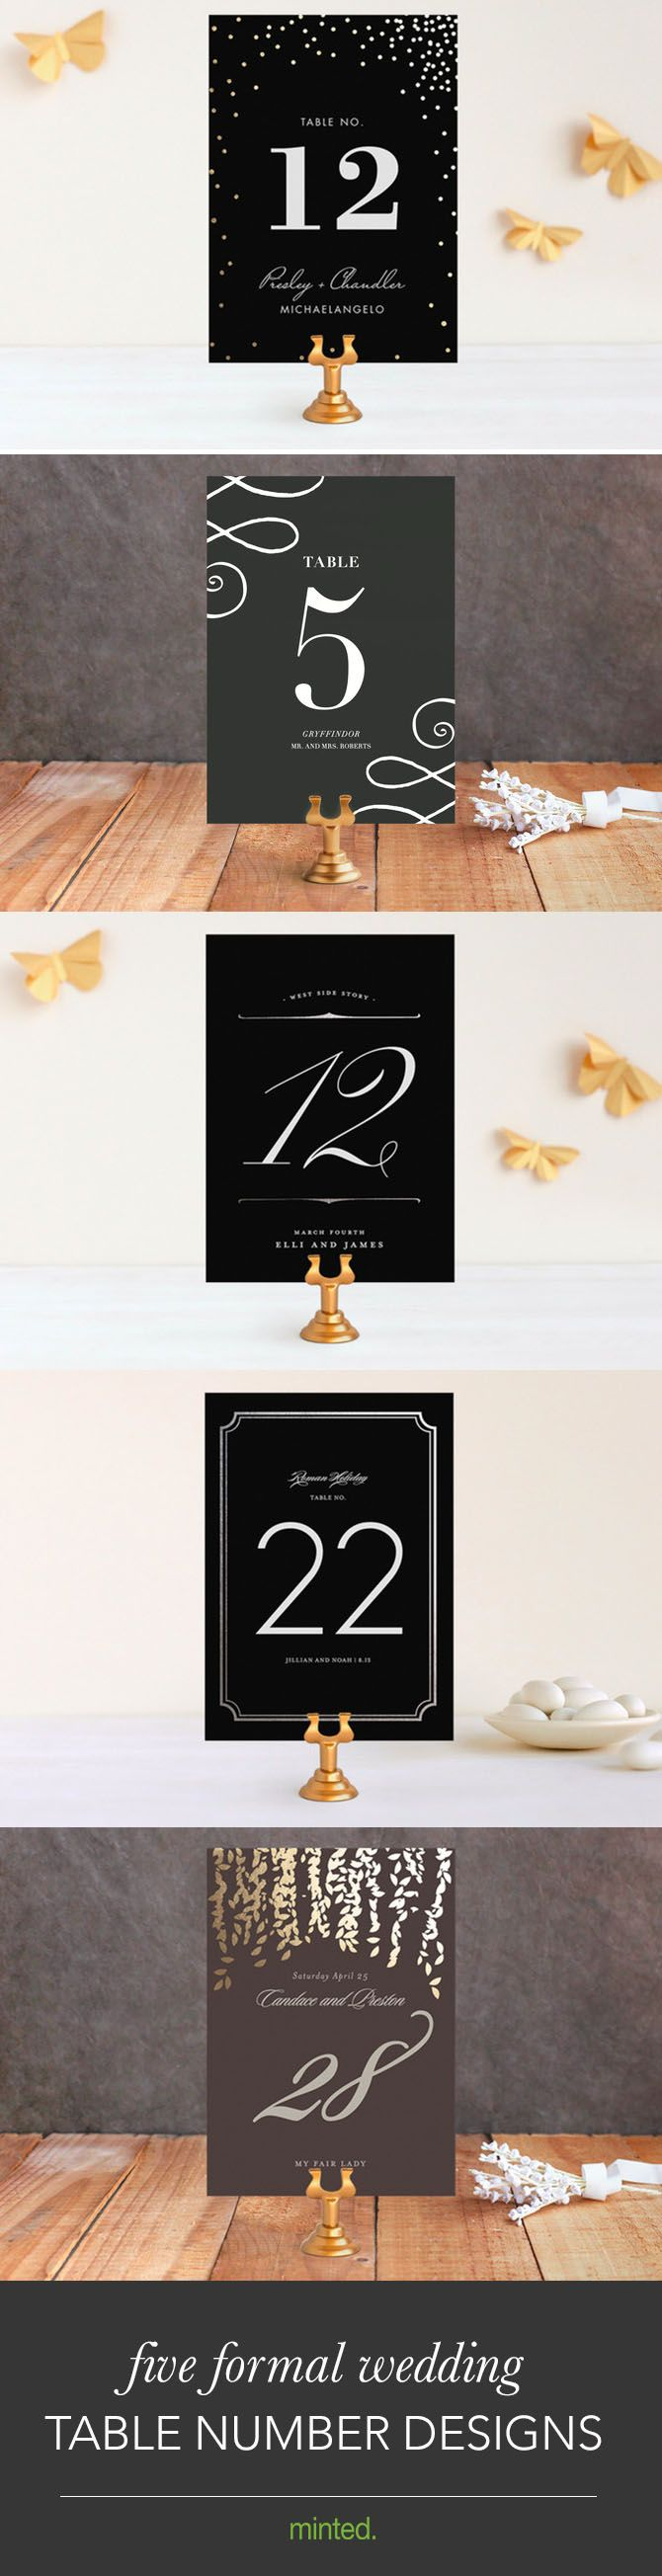 Wedding Reception and Decor Ideas for Tablescape - Customizable Table Numbers from Minted.